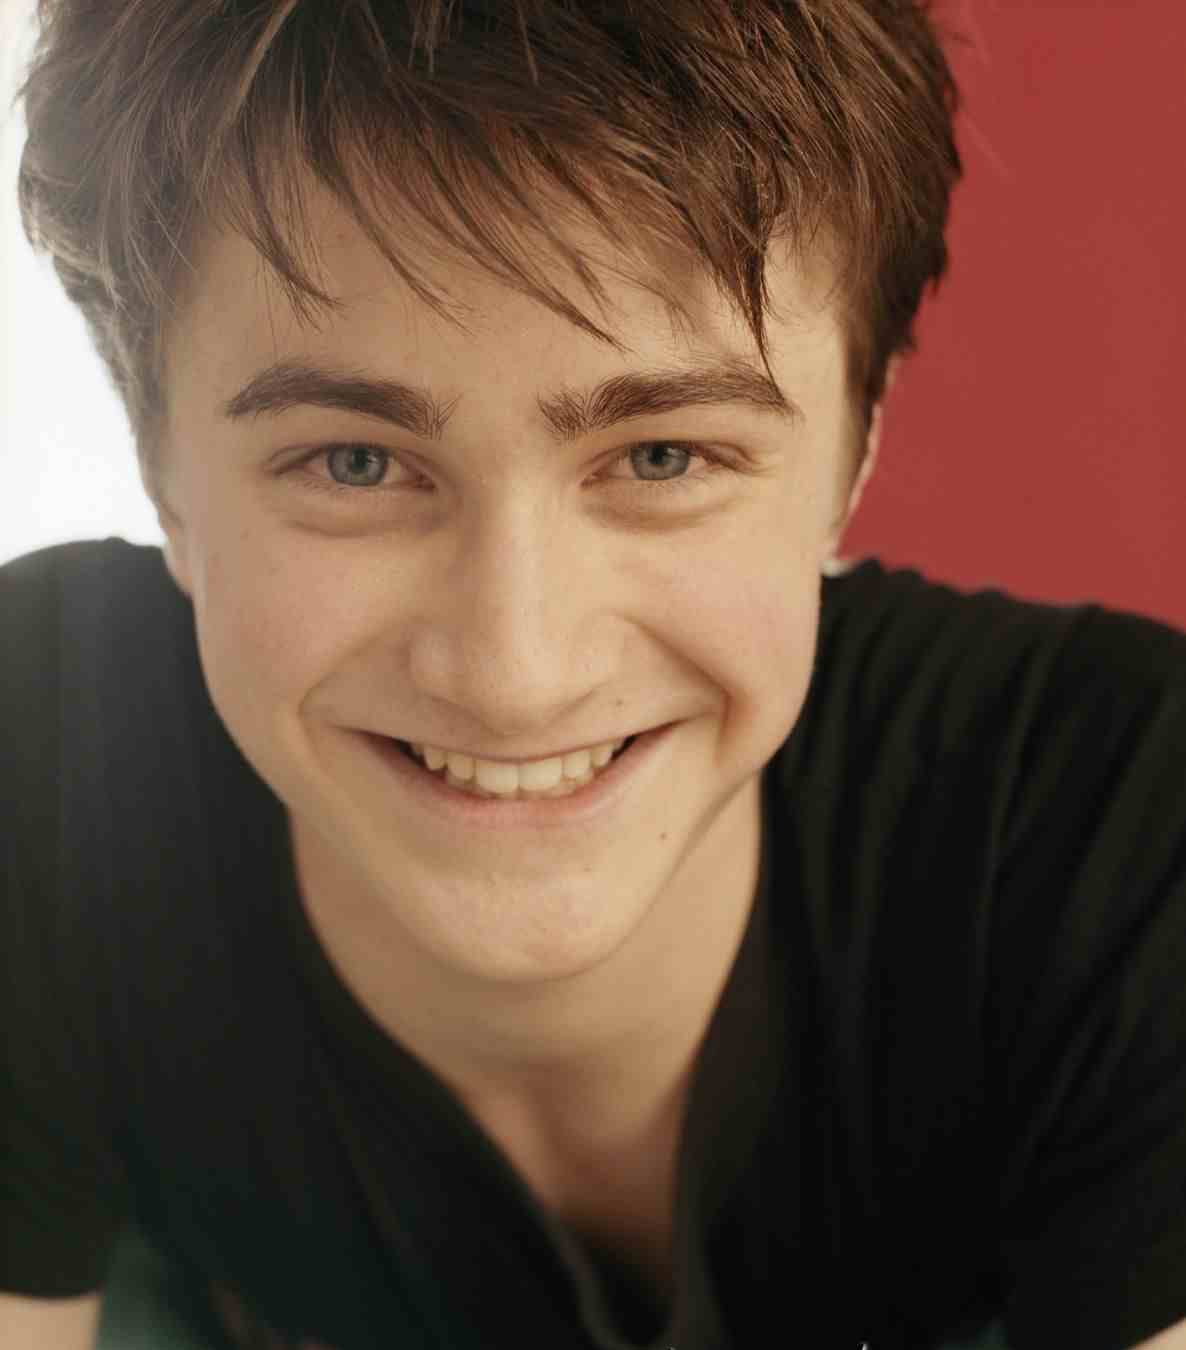 Daniel Radcliffe (born 1989) nudes (12 images) Erotica, Twitter, braless